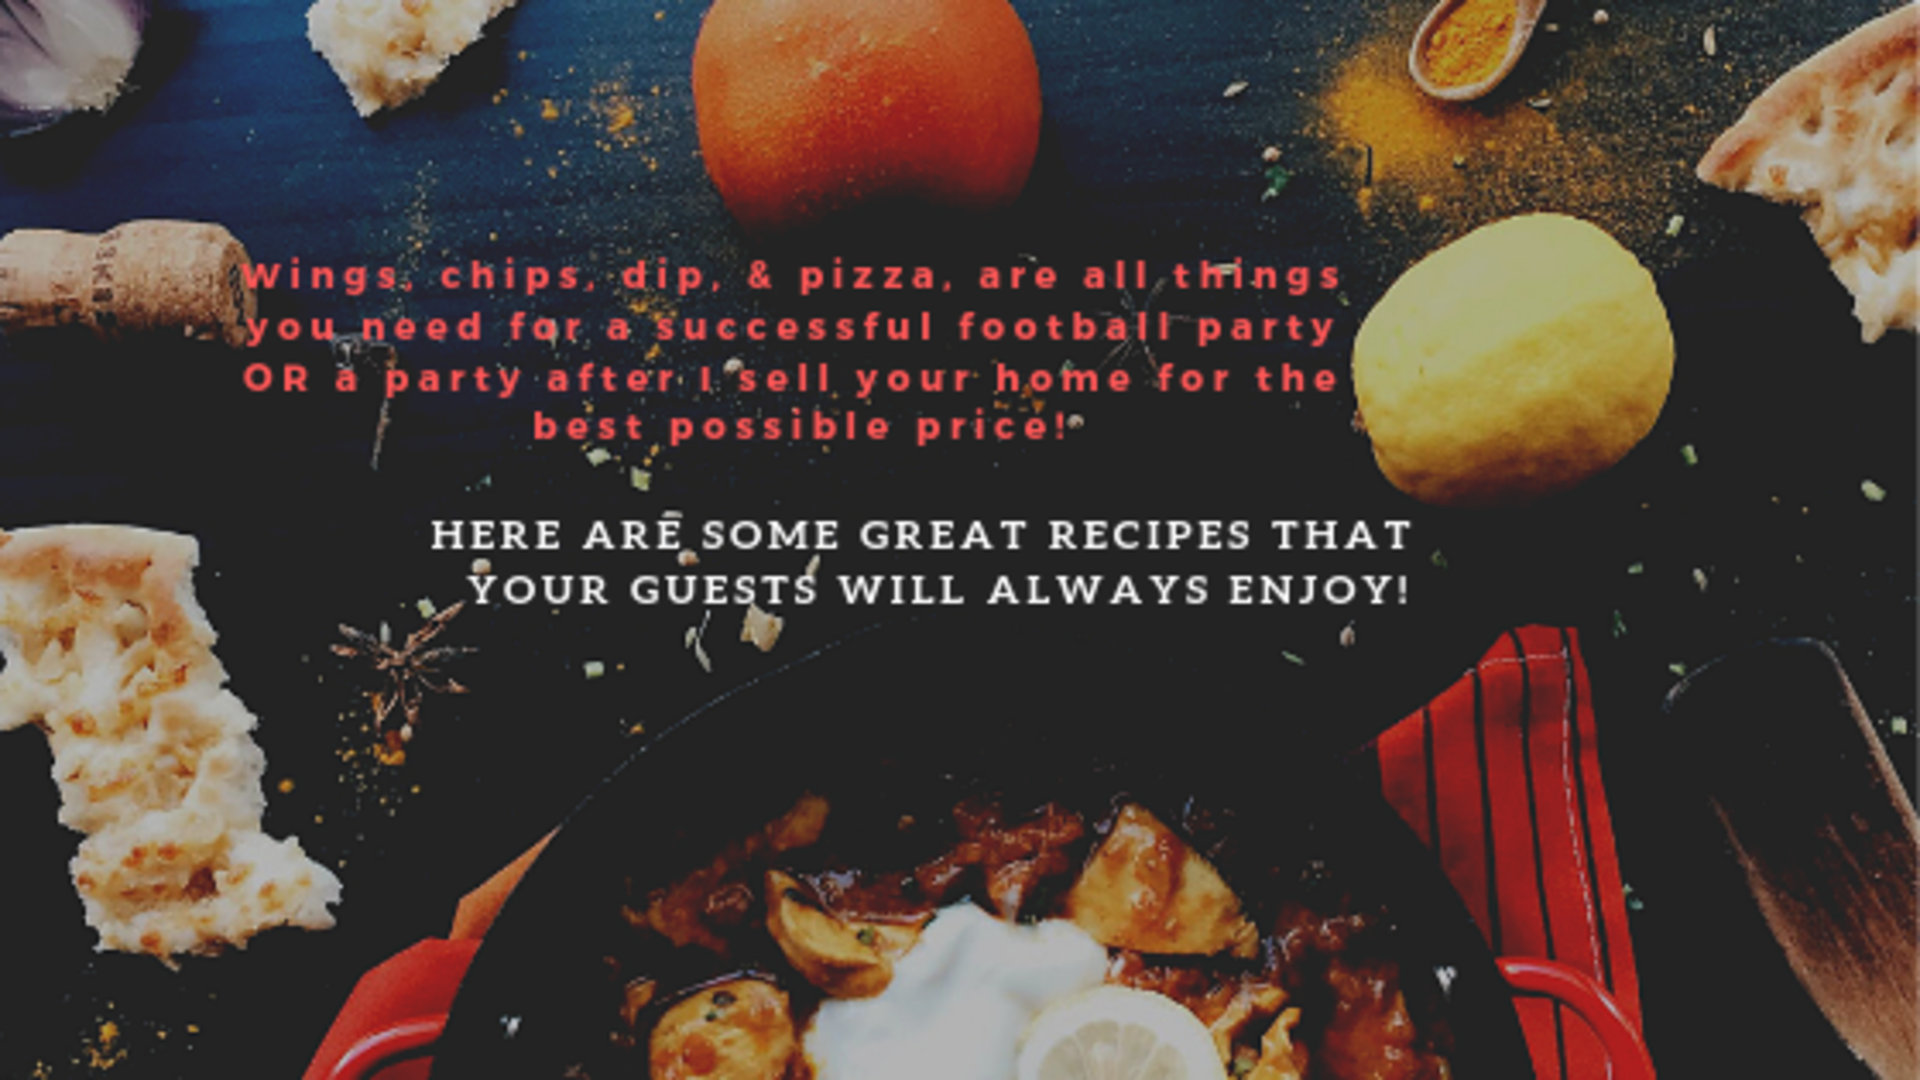 Wings, chips, dip, pizza, all things you need for a successful football party OR a party after I sell your home for the best possible price!